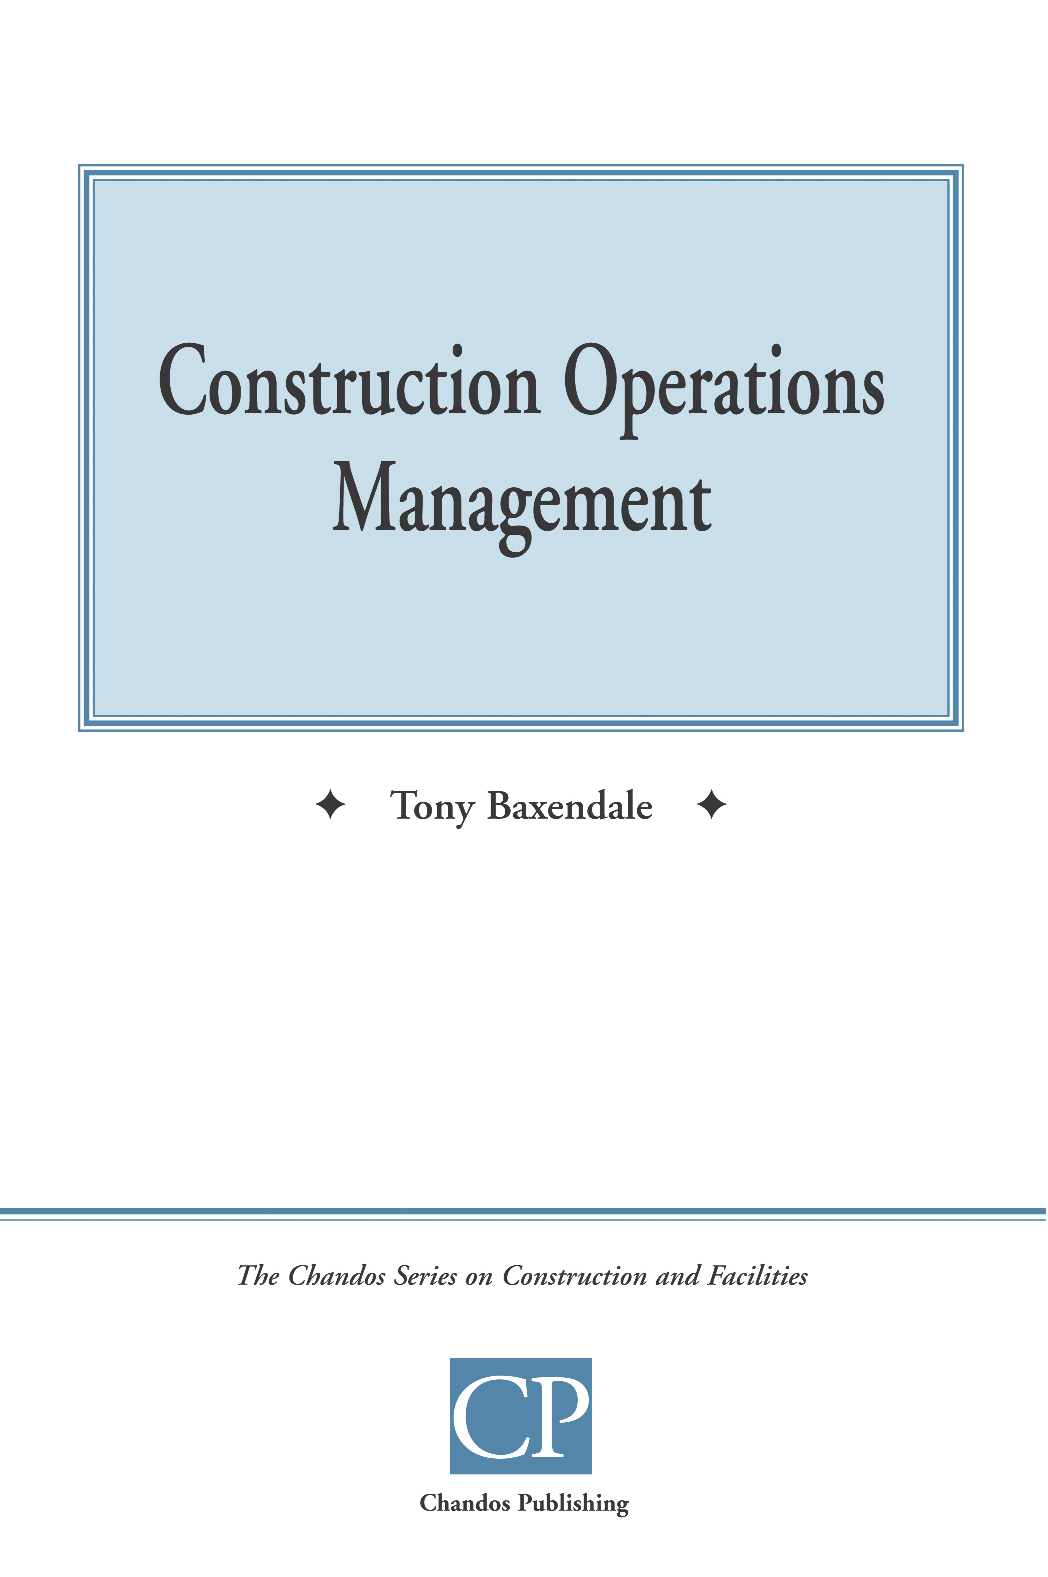 Construction Operations Management